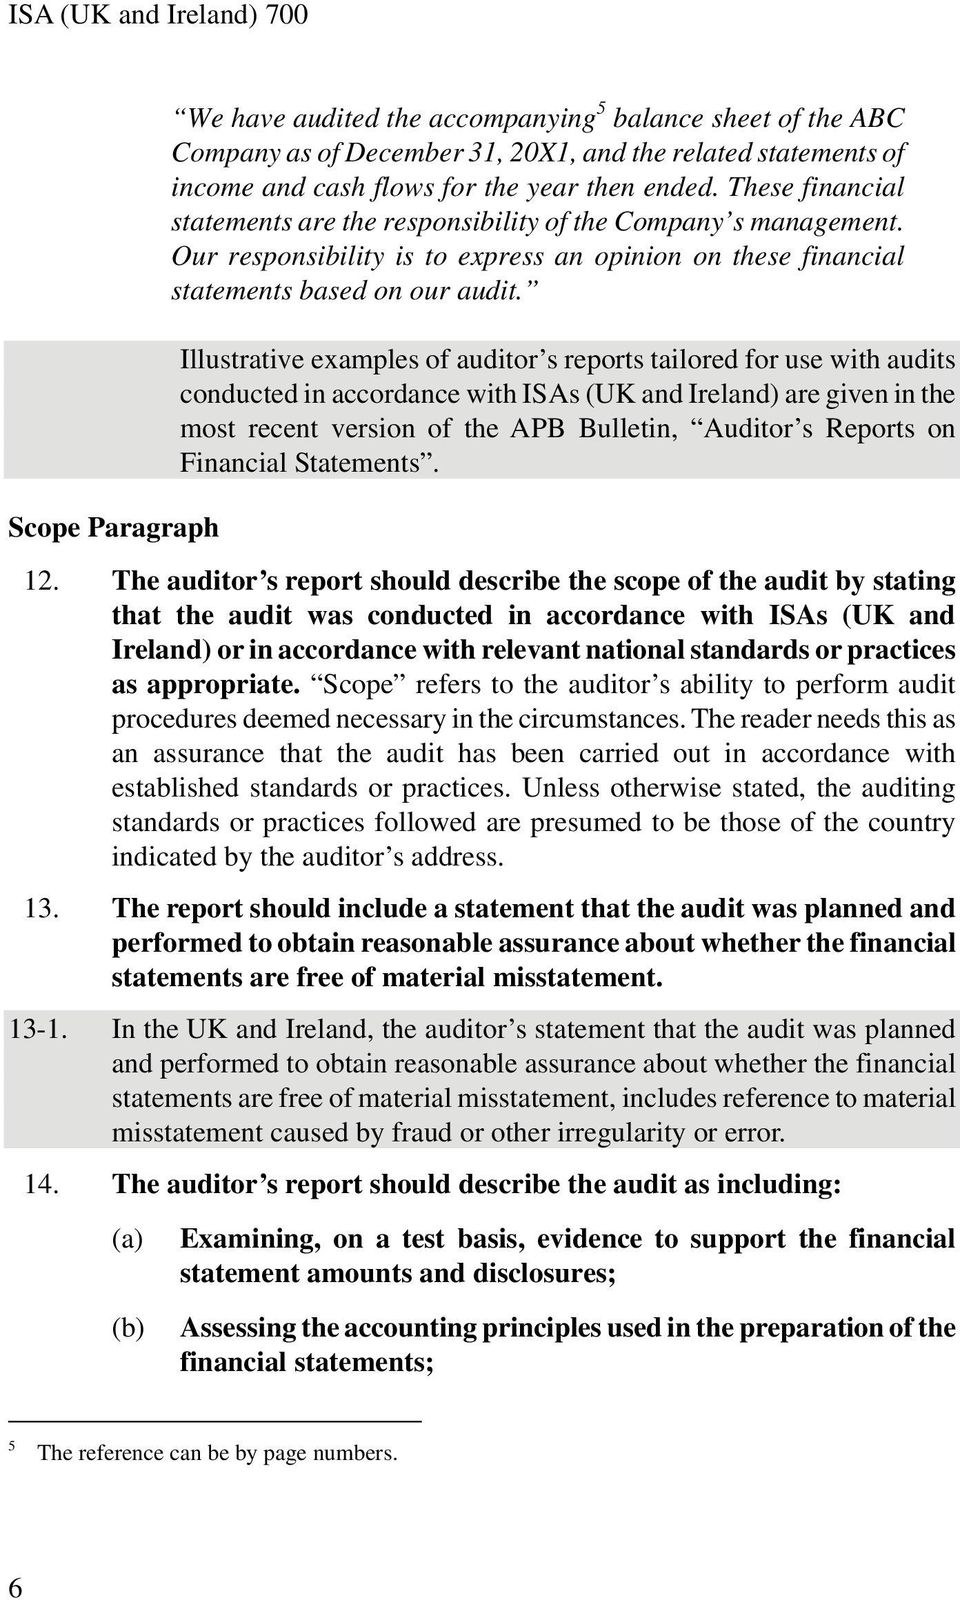 Illustrative examples of auditor s reports tailored for use with audits conducted in accordance with ISAs (UK and Ireland) are given in the most recent version of the APB Bulletin, Auditor s Reports